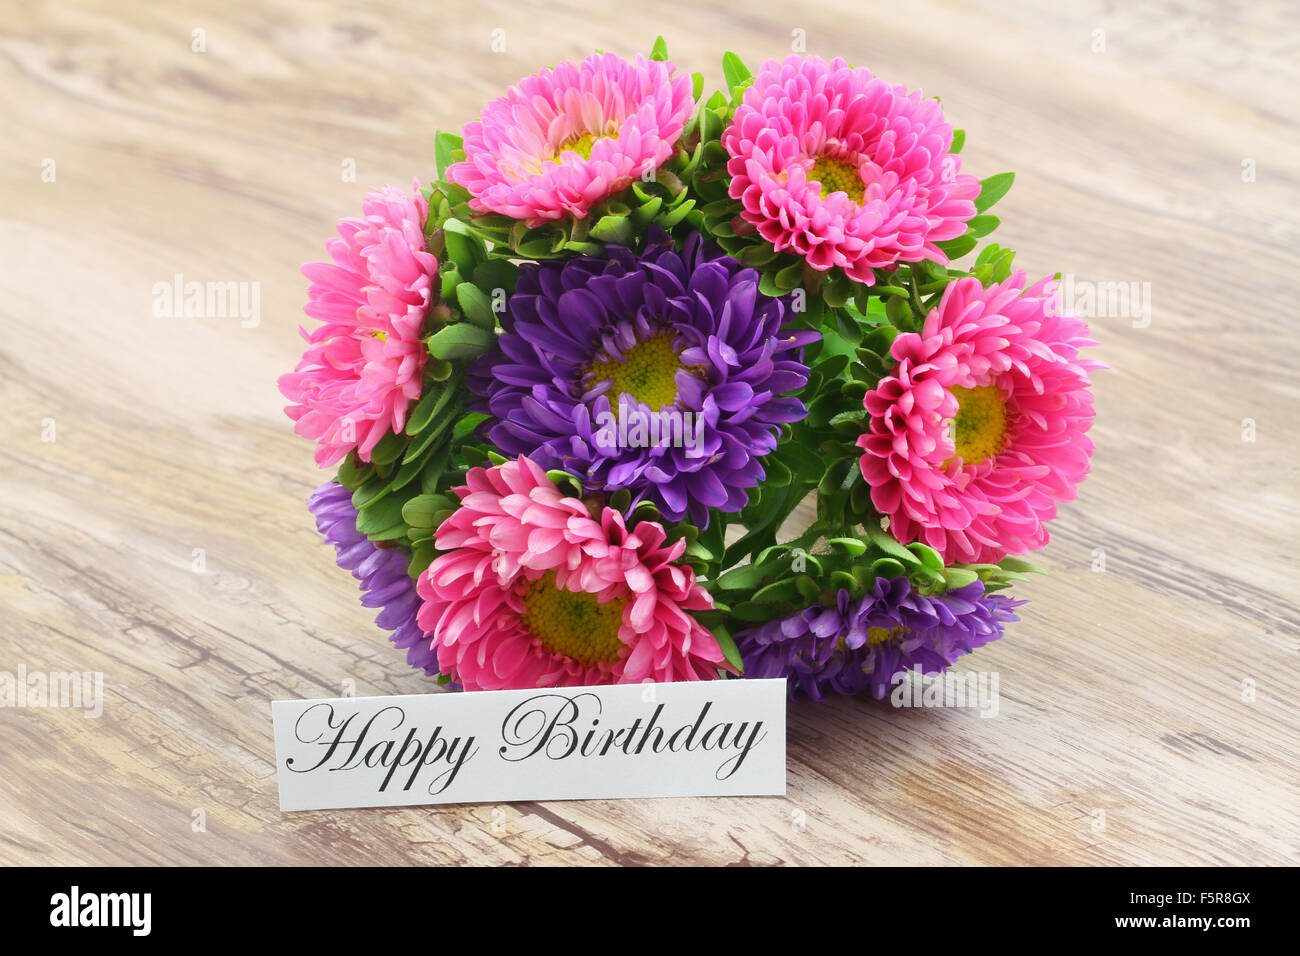 Happy Birthday Card Colorful Aster Stock Photos & Happy Birthday ...